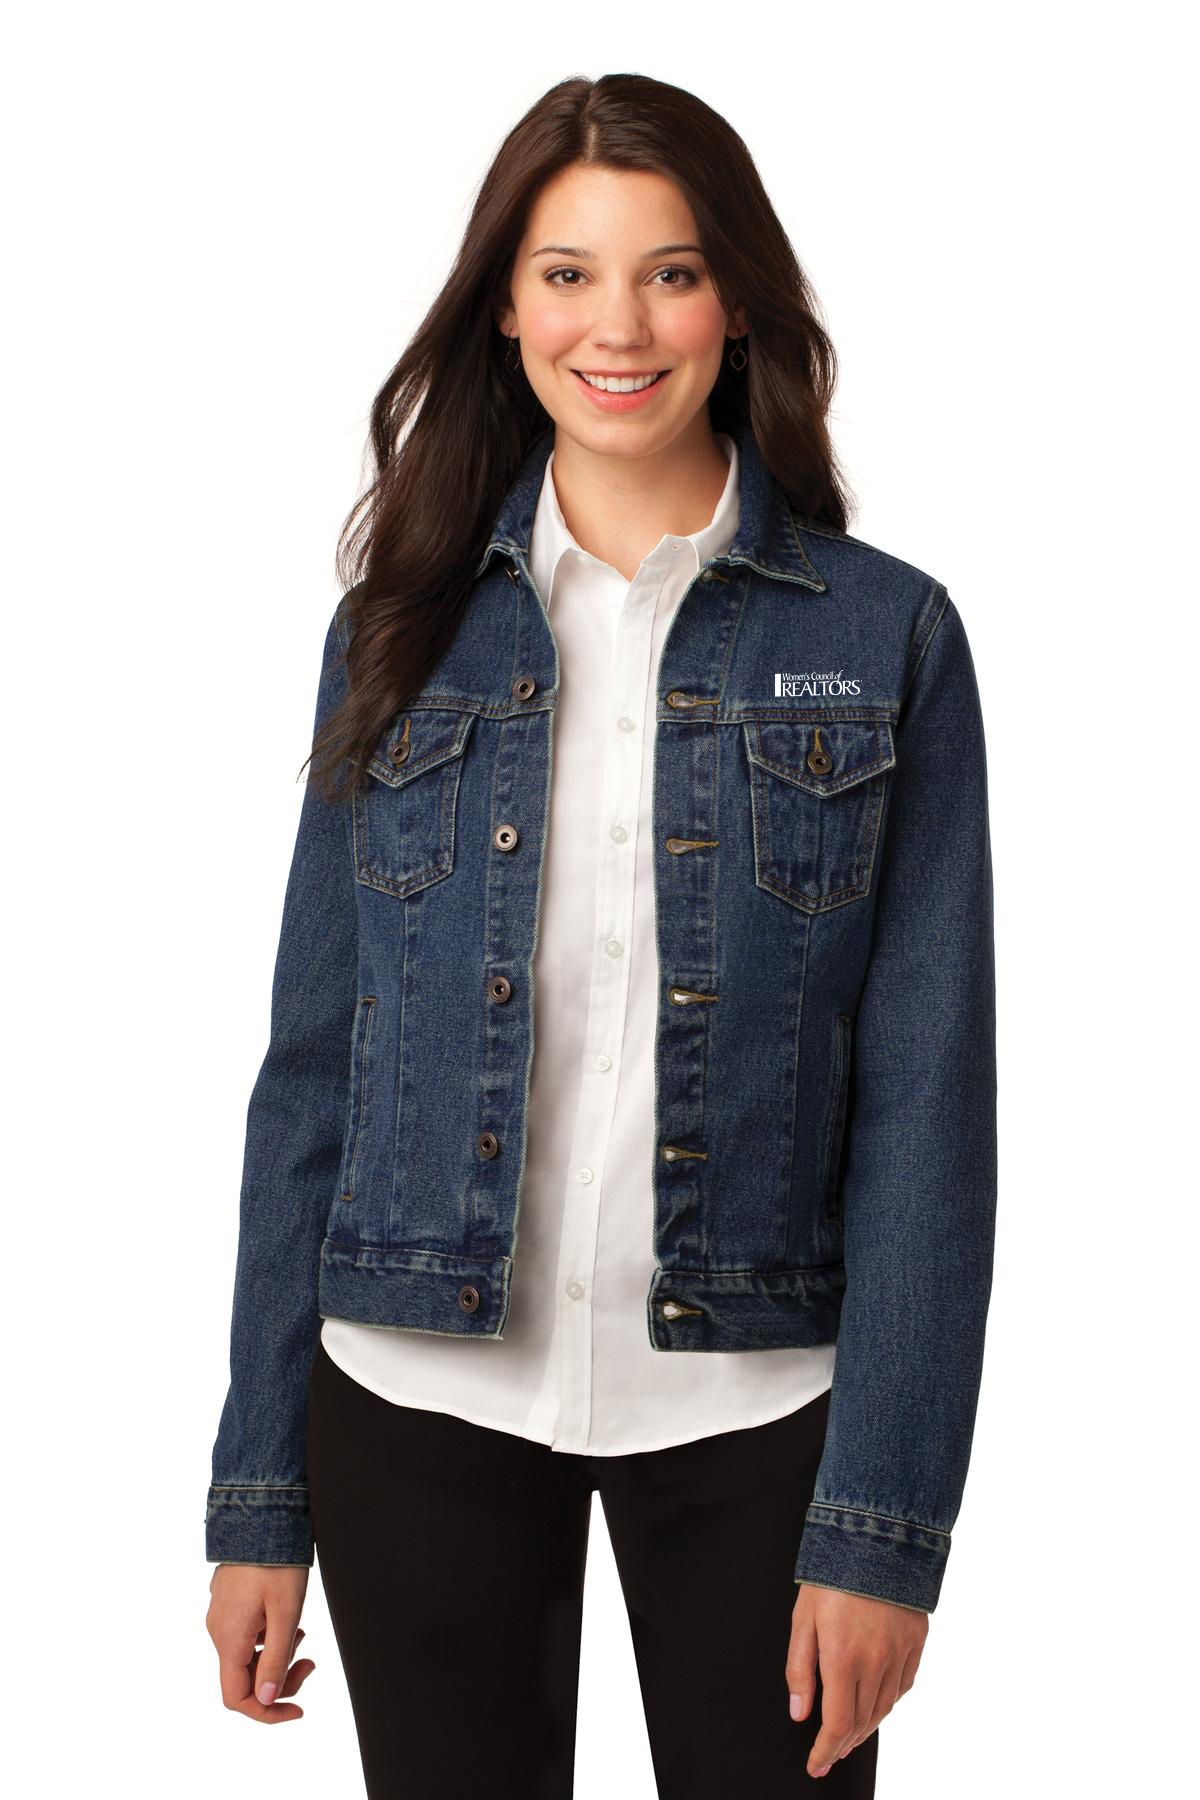 Ladies Denim Jacket #WCL3080 - WCR Team Store